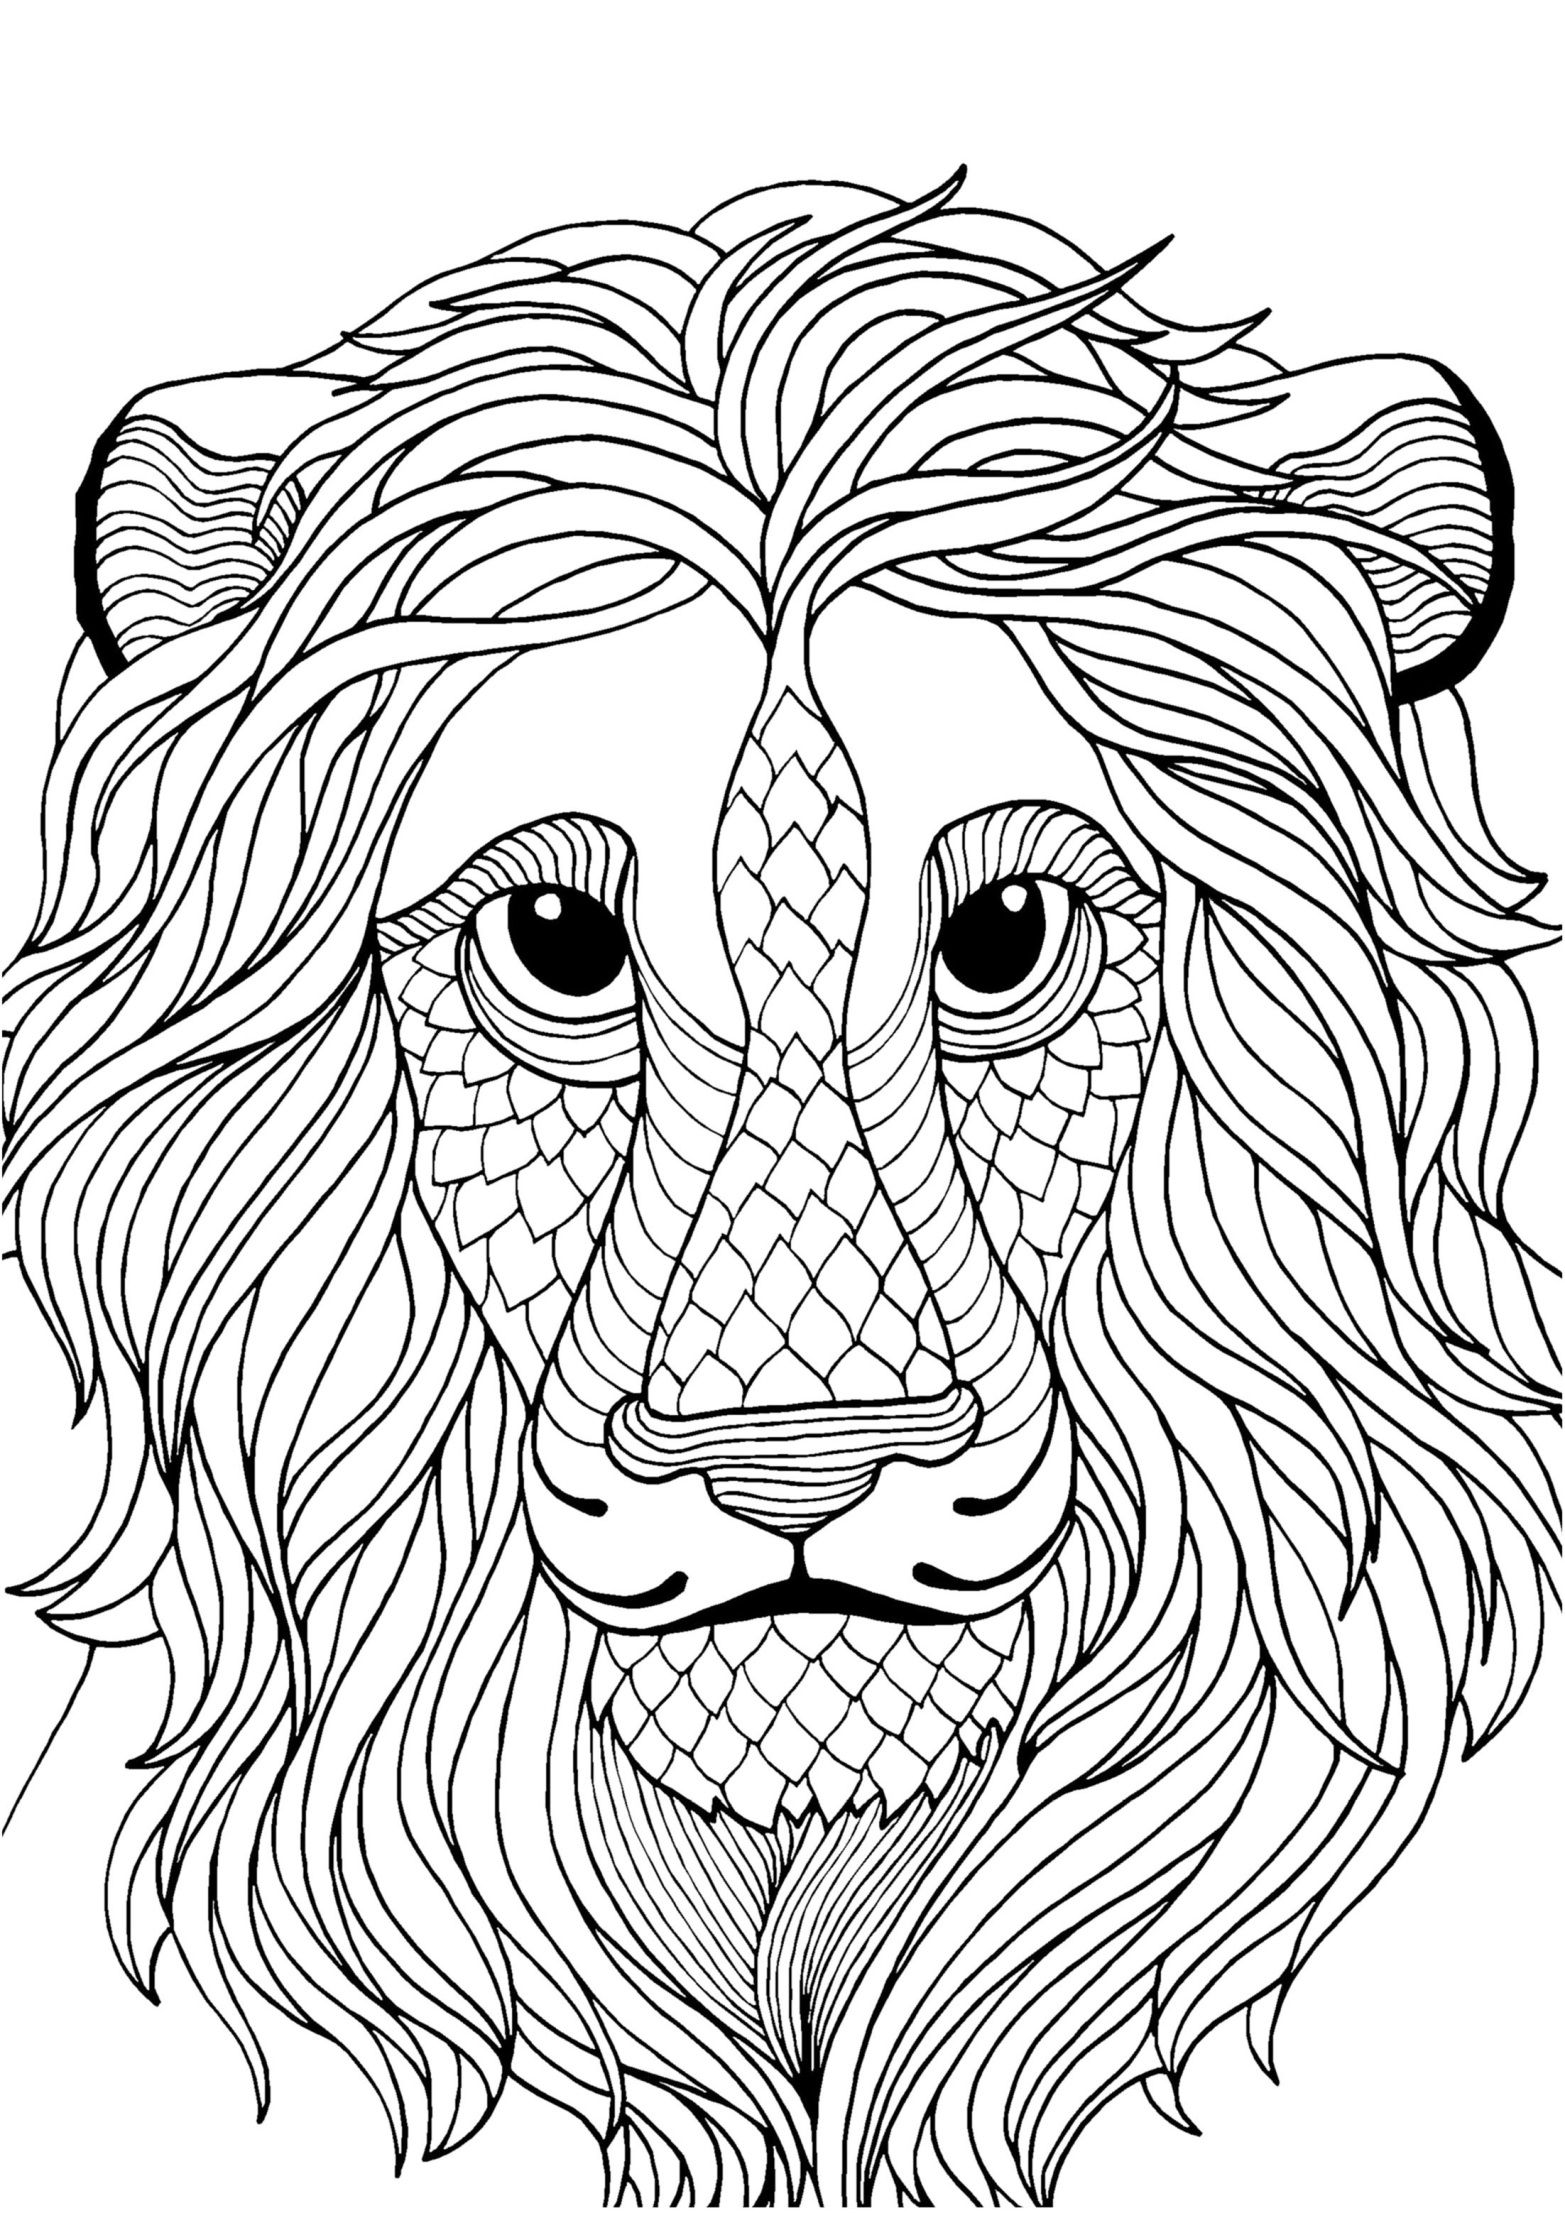 Lion adult colouring page Colouring